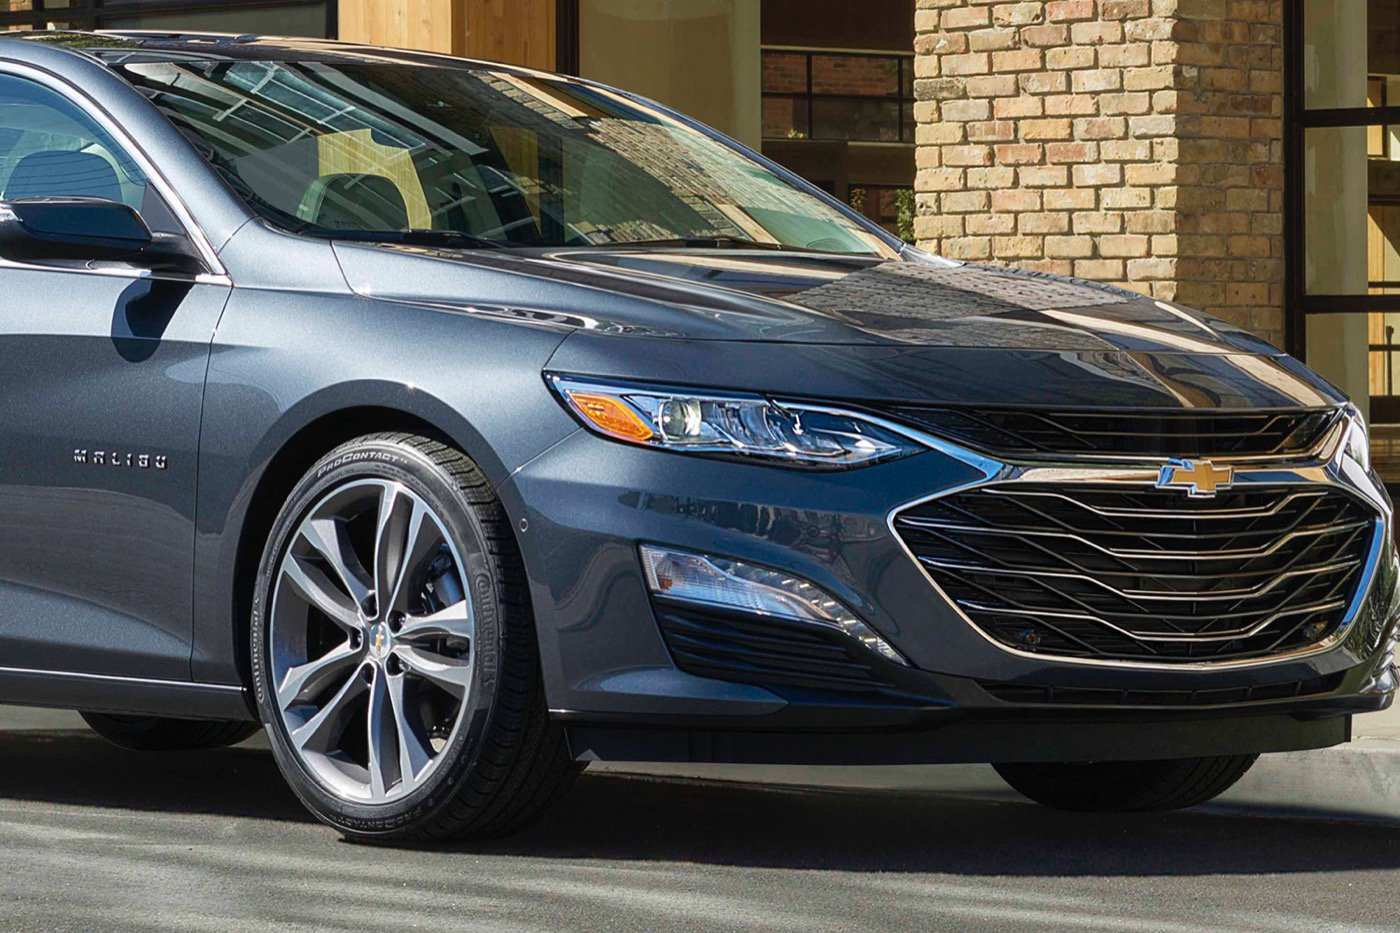 54 Best Chevrolet Malibu 2020 Overview